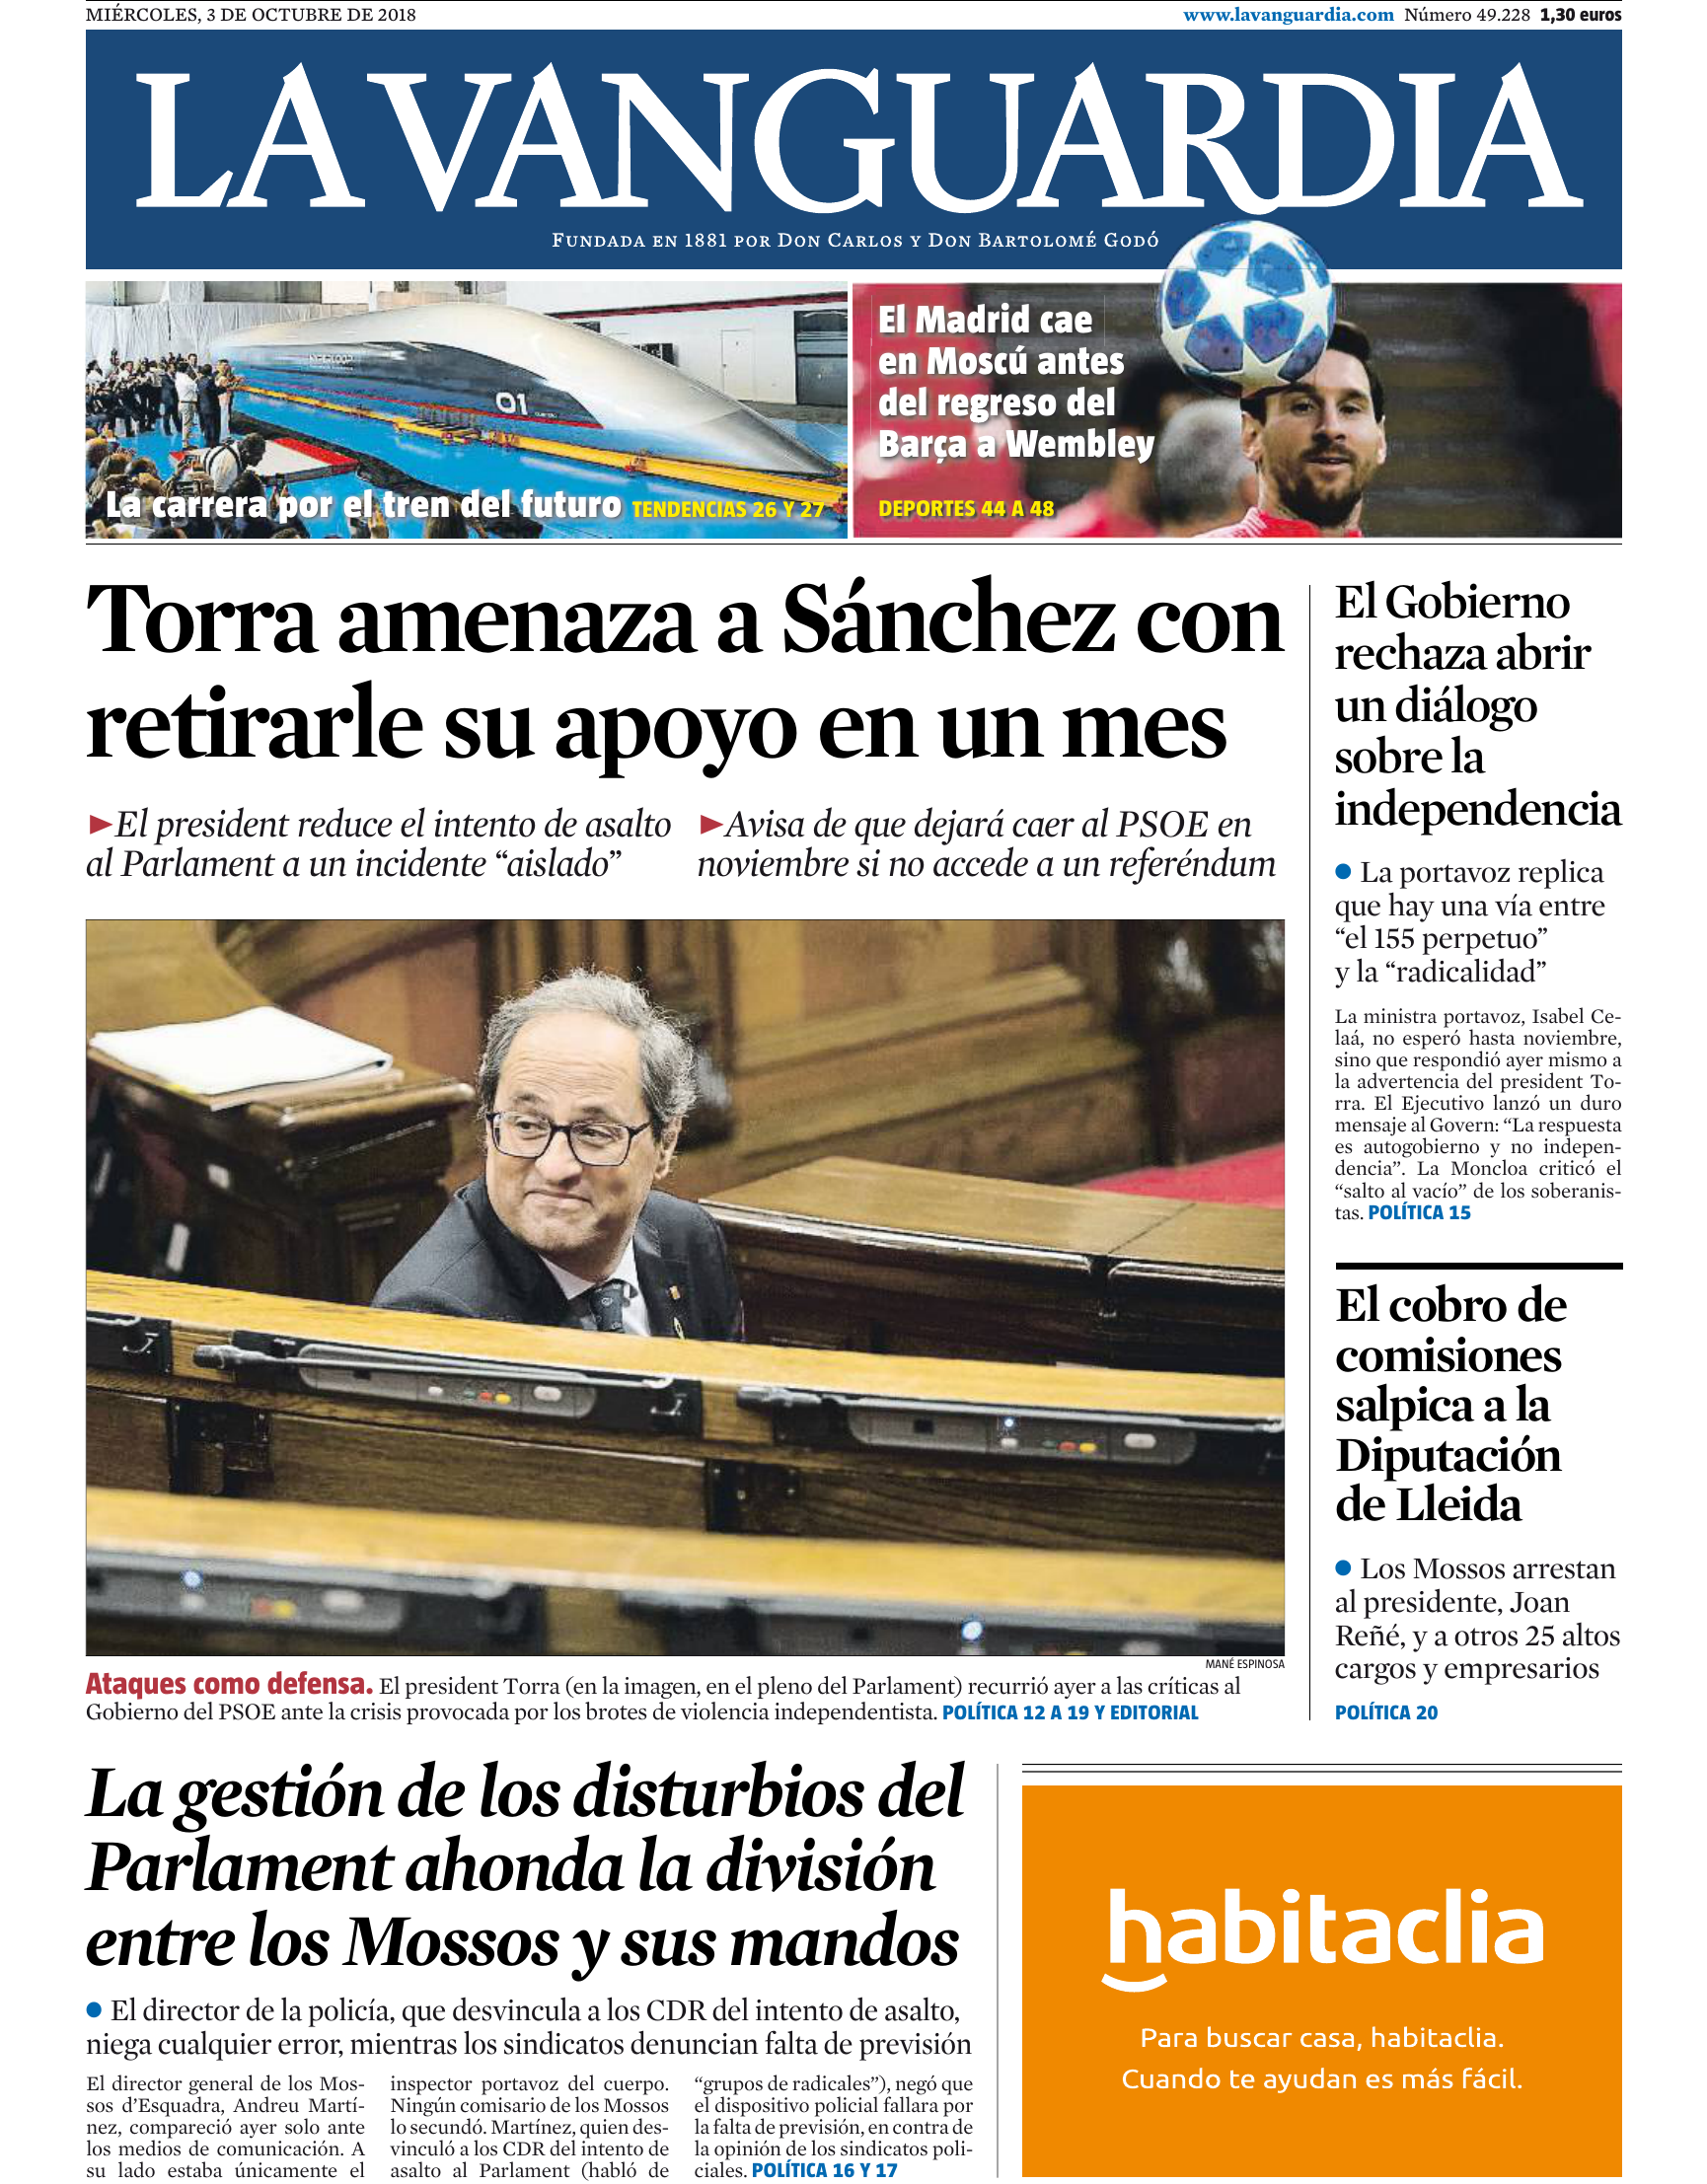 7a144e4bb64 03-10 La Vanguardia